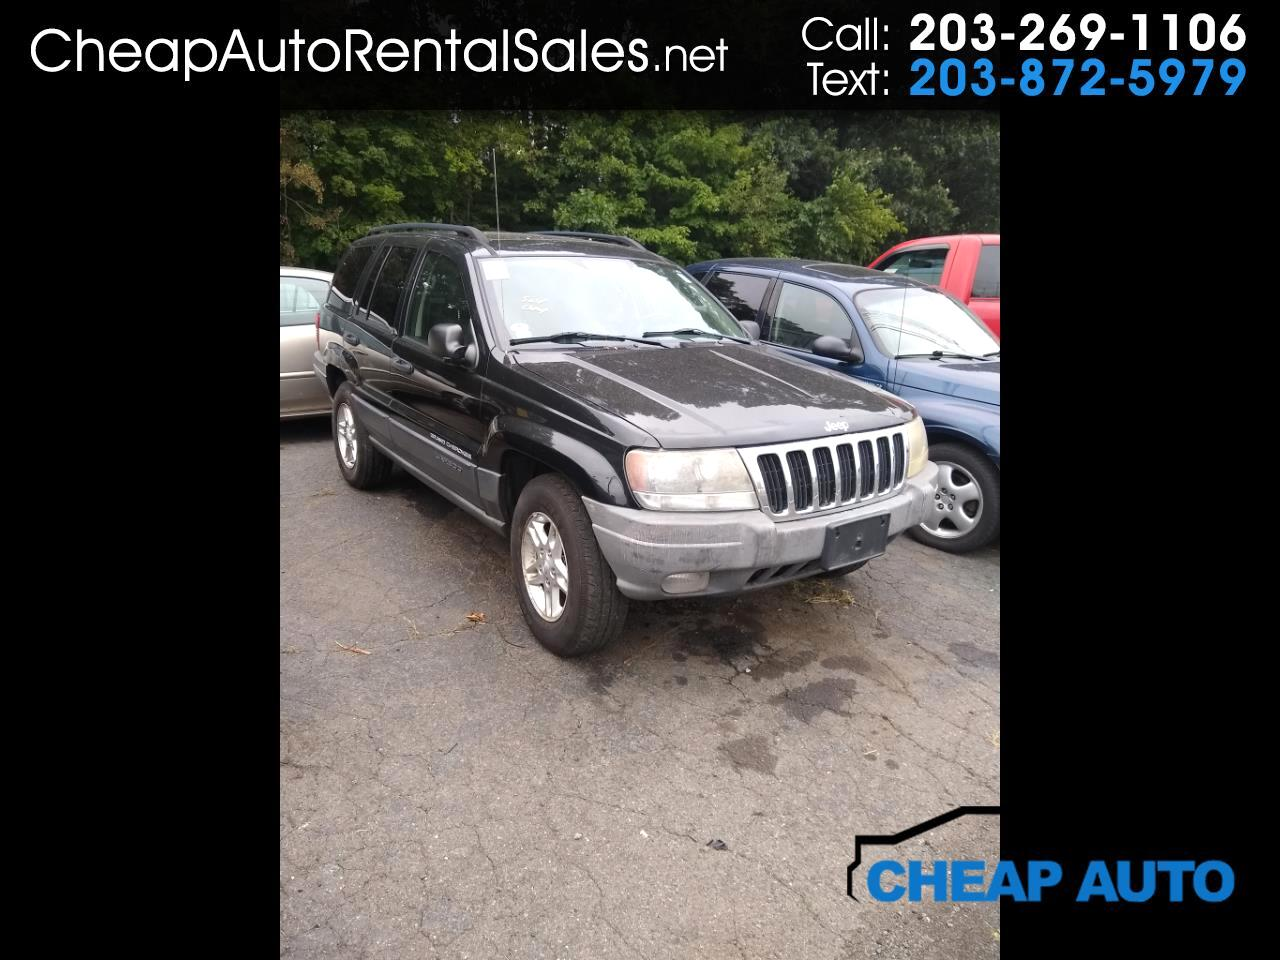 2003 Jeep Grand Cherokee Laredo 4WD